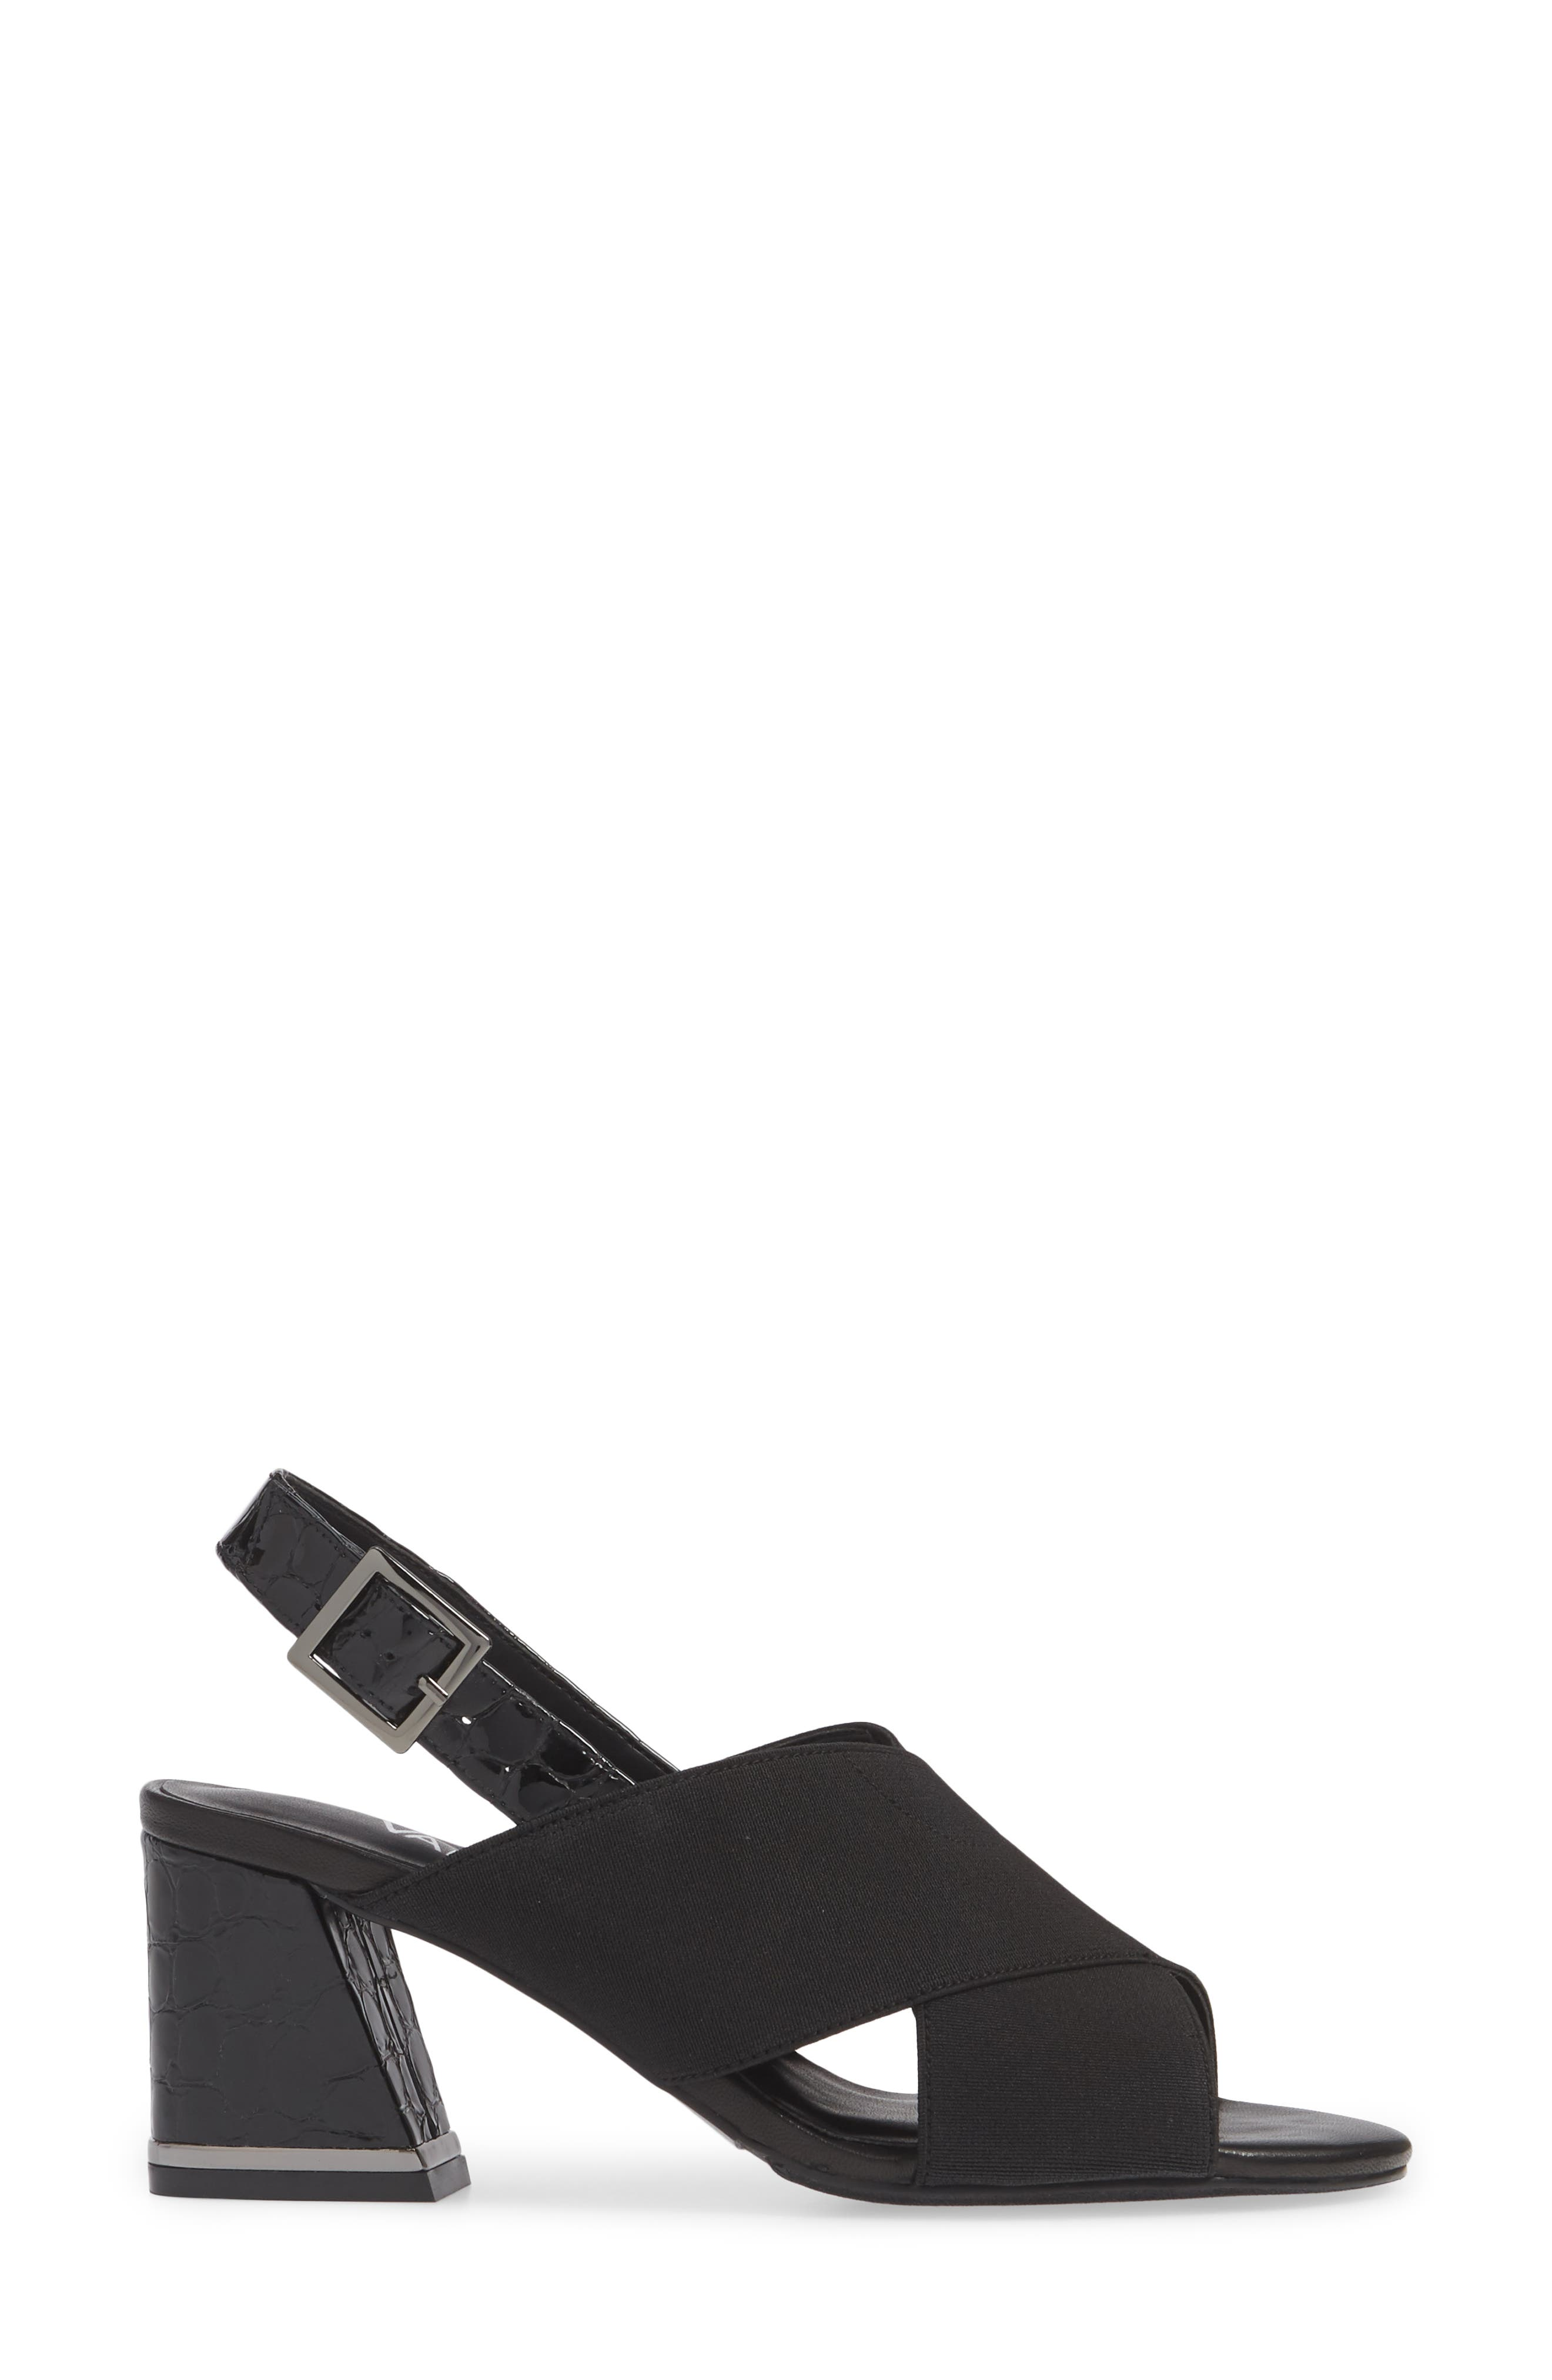 Bamba Slingback Sandal,                             Alternate thumbnail 3, color,                             BLACK